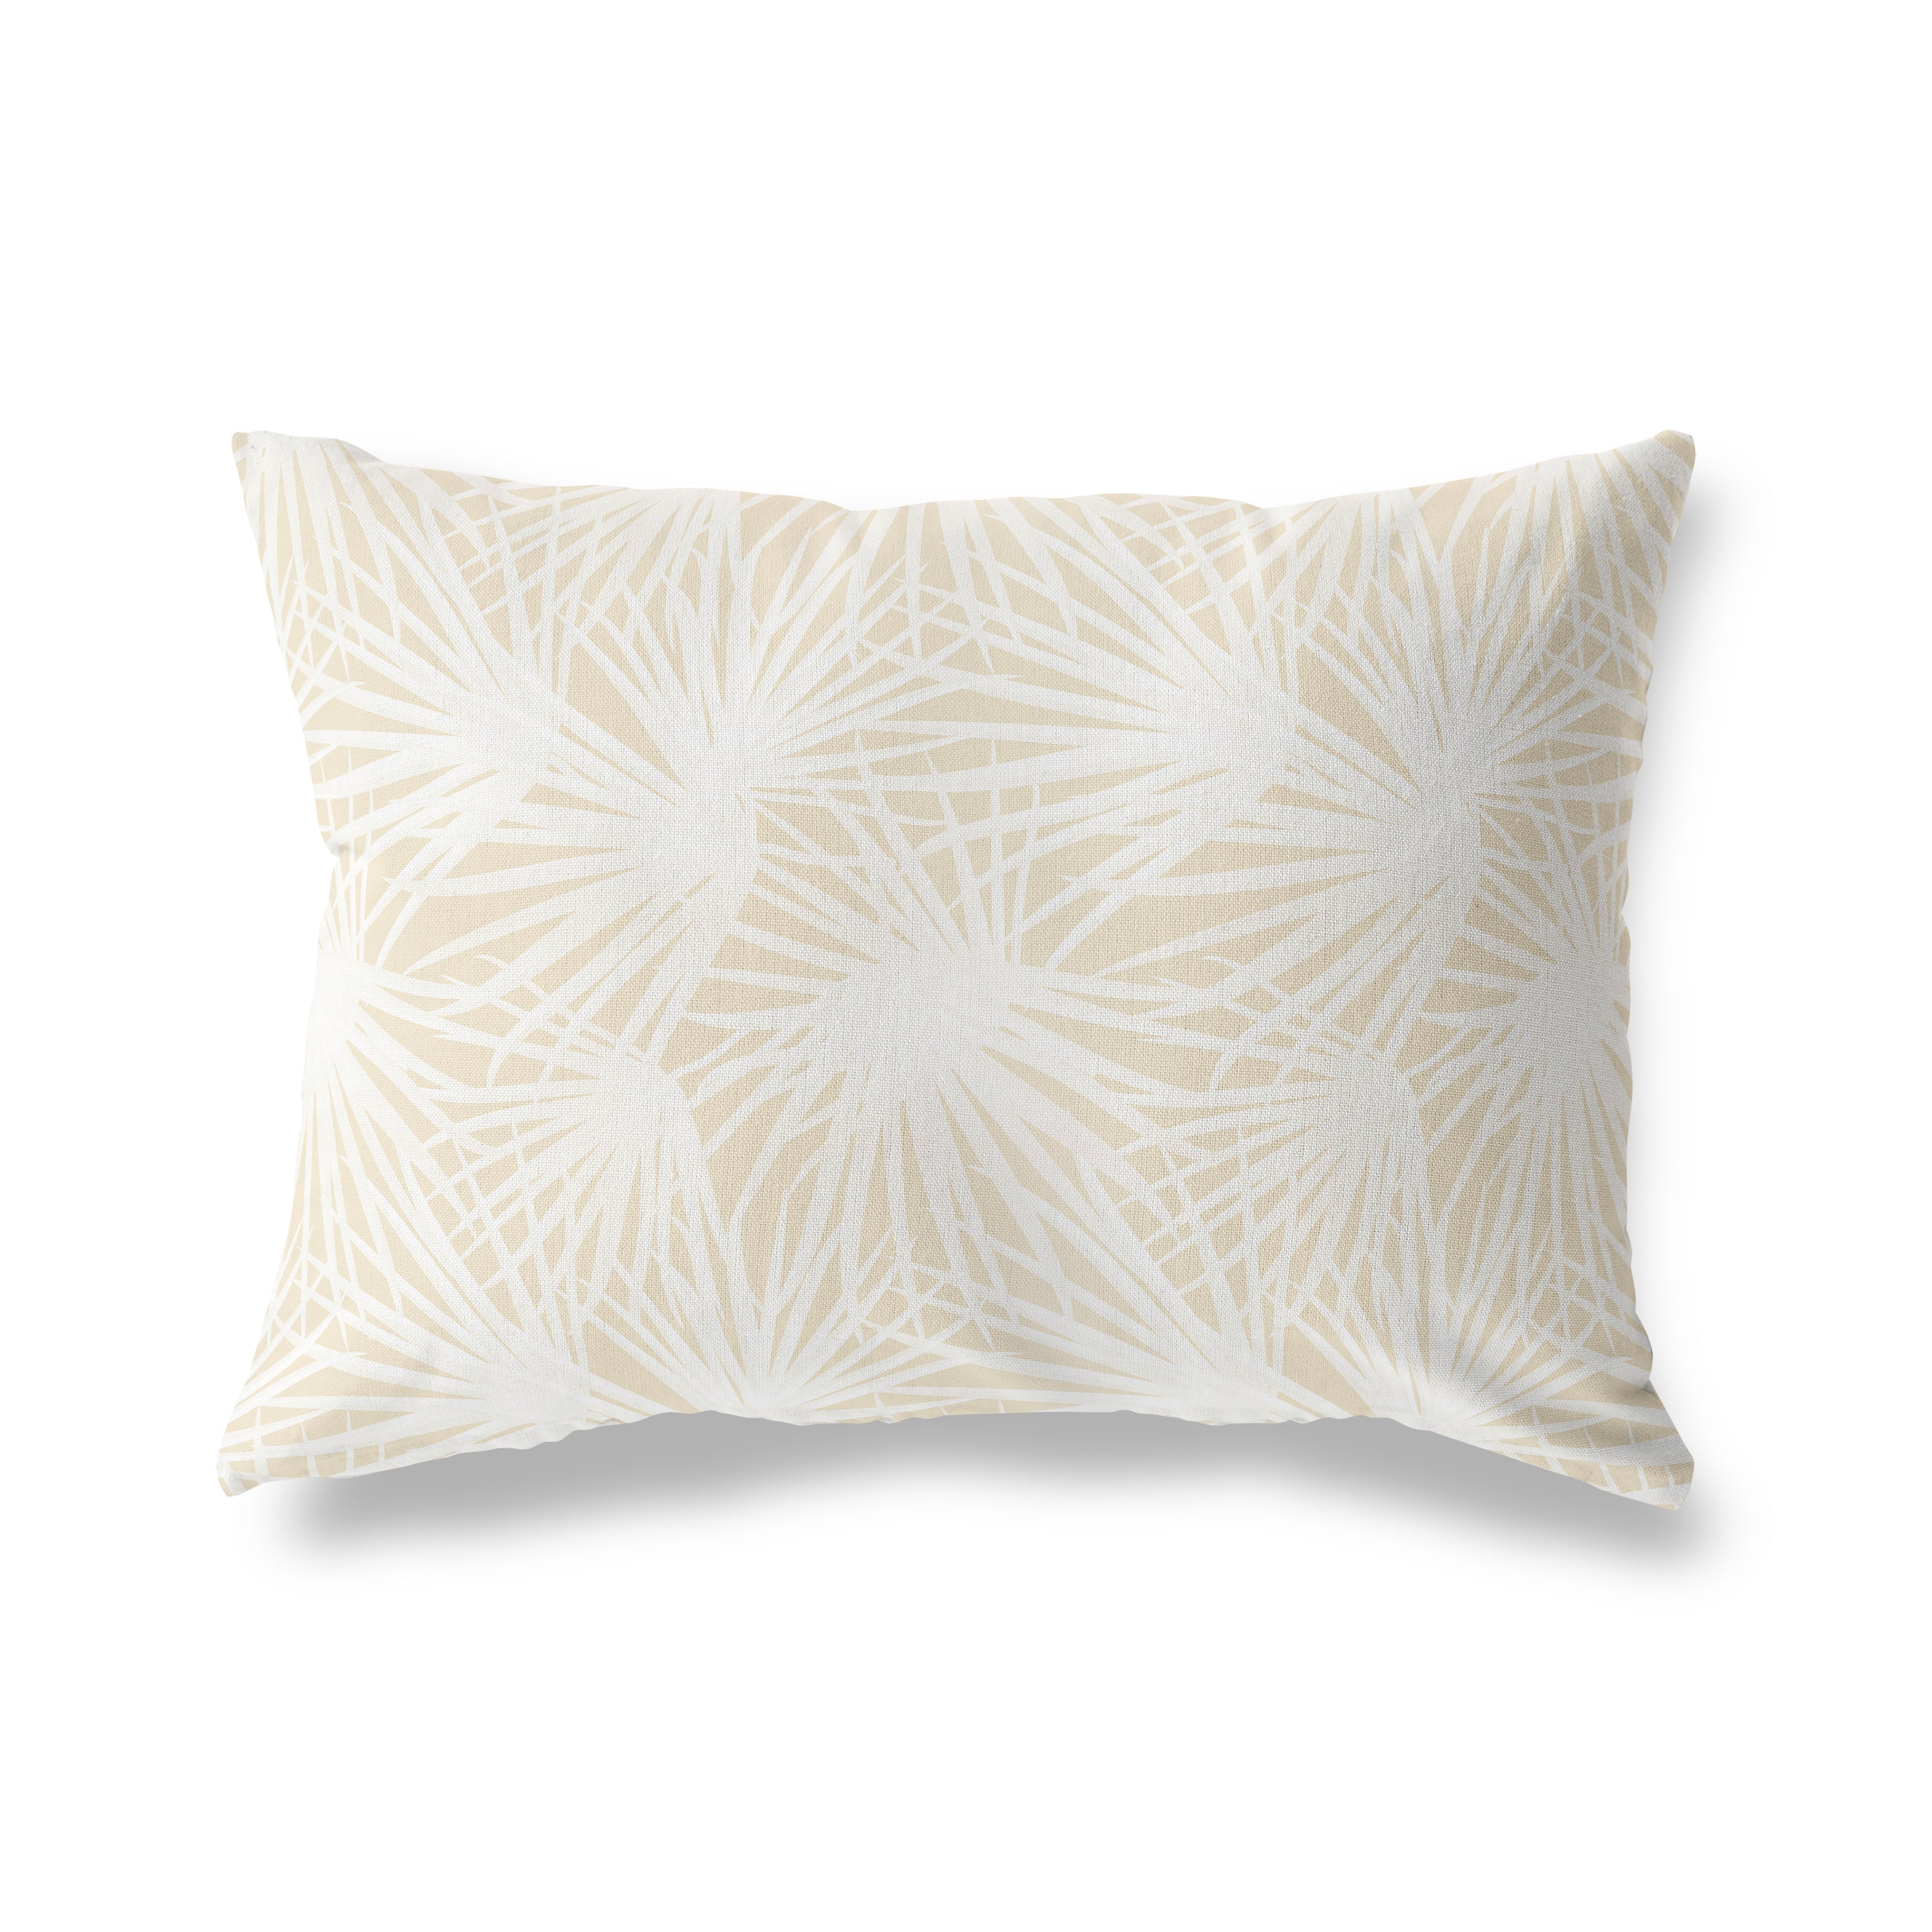 PALM BALM OATMEAL Lumbar Pillow By Terri Ellis